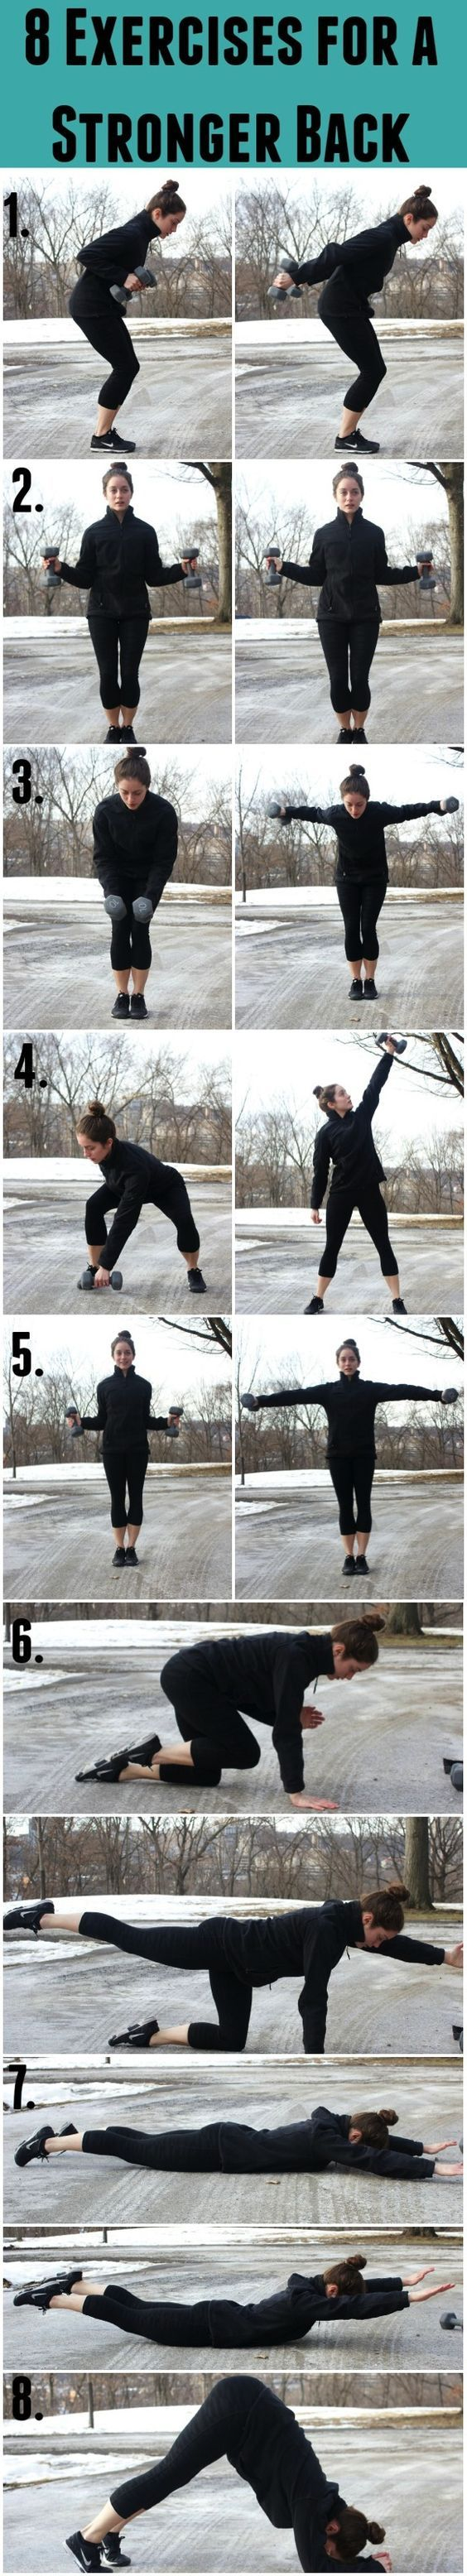 8 Exercises for a Stronger Back-Working your core is useless if you aren't also working your back muscles. These 8 exercises will help you increase your back strength!8 Exercises for a Stronger Back-Working your core is useless if you aren't also working your back muscles. These 8 exercises will help you increase